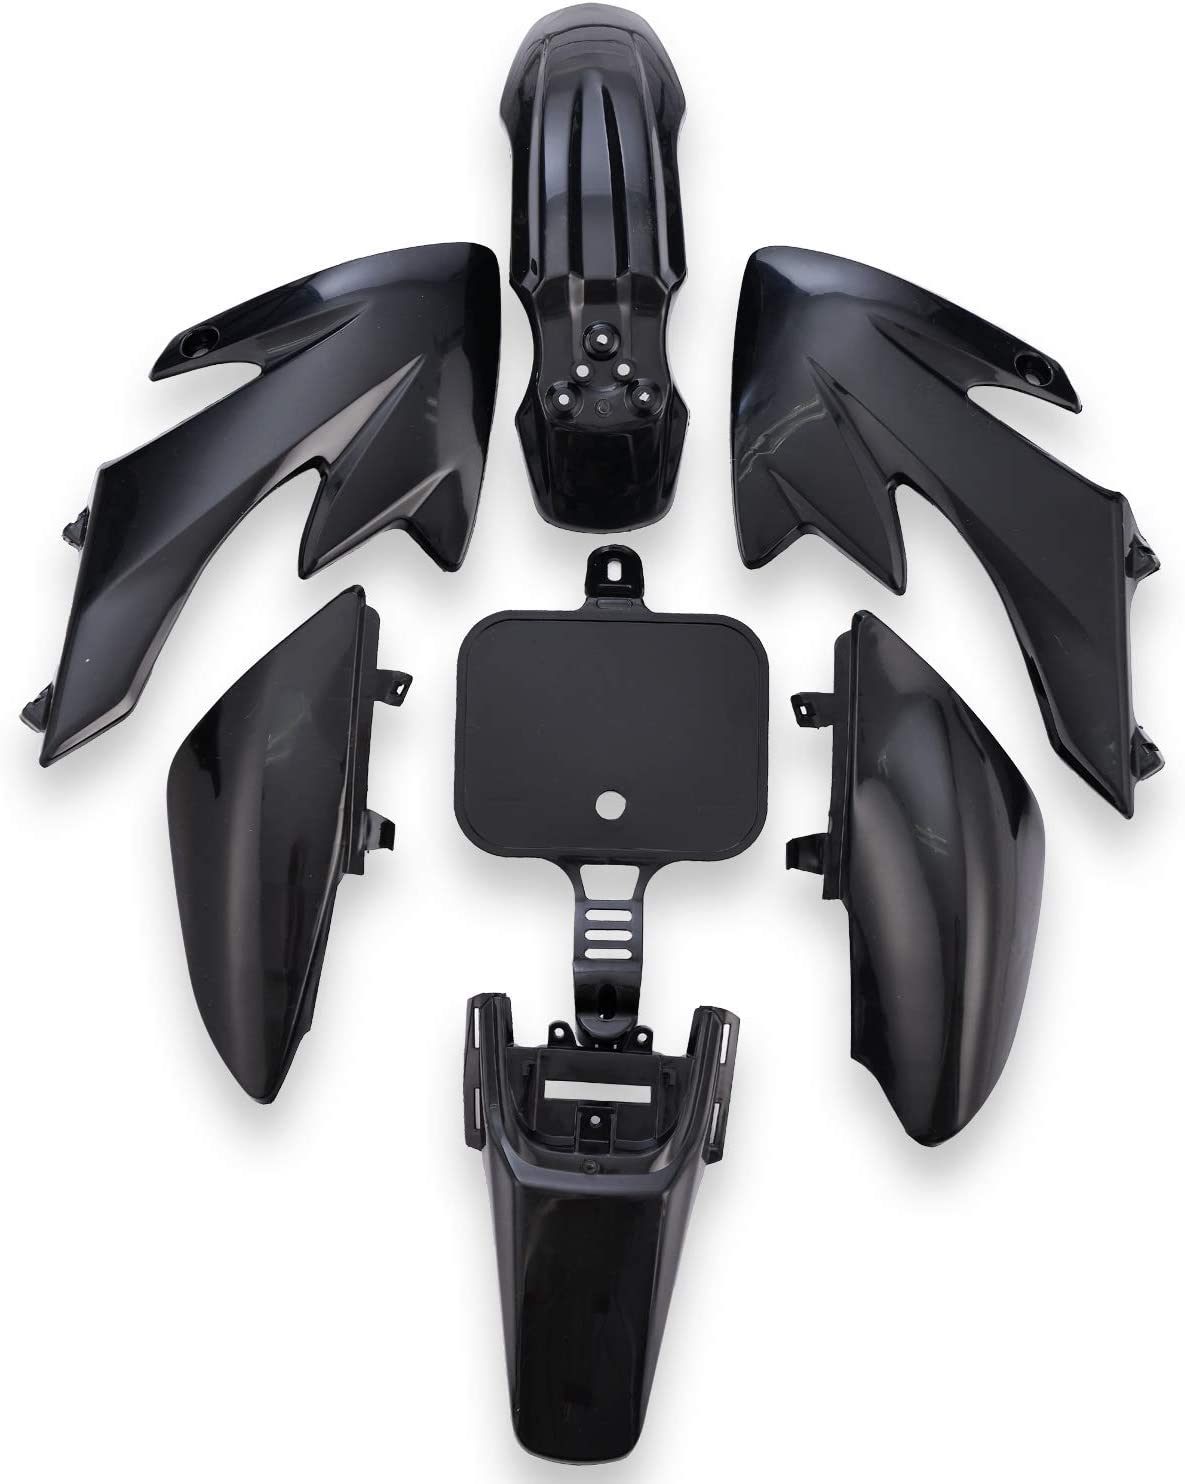 Necaces Plastic Fender Fairing Set Kit Clearance SALE Limited time f Sale special price Body